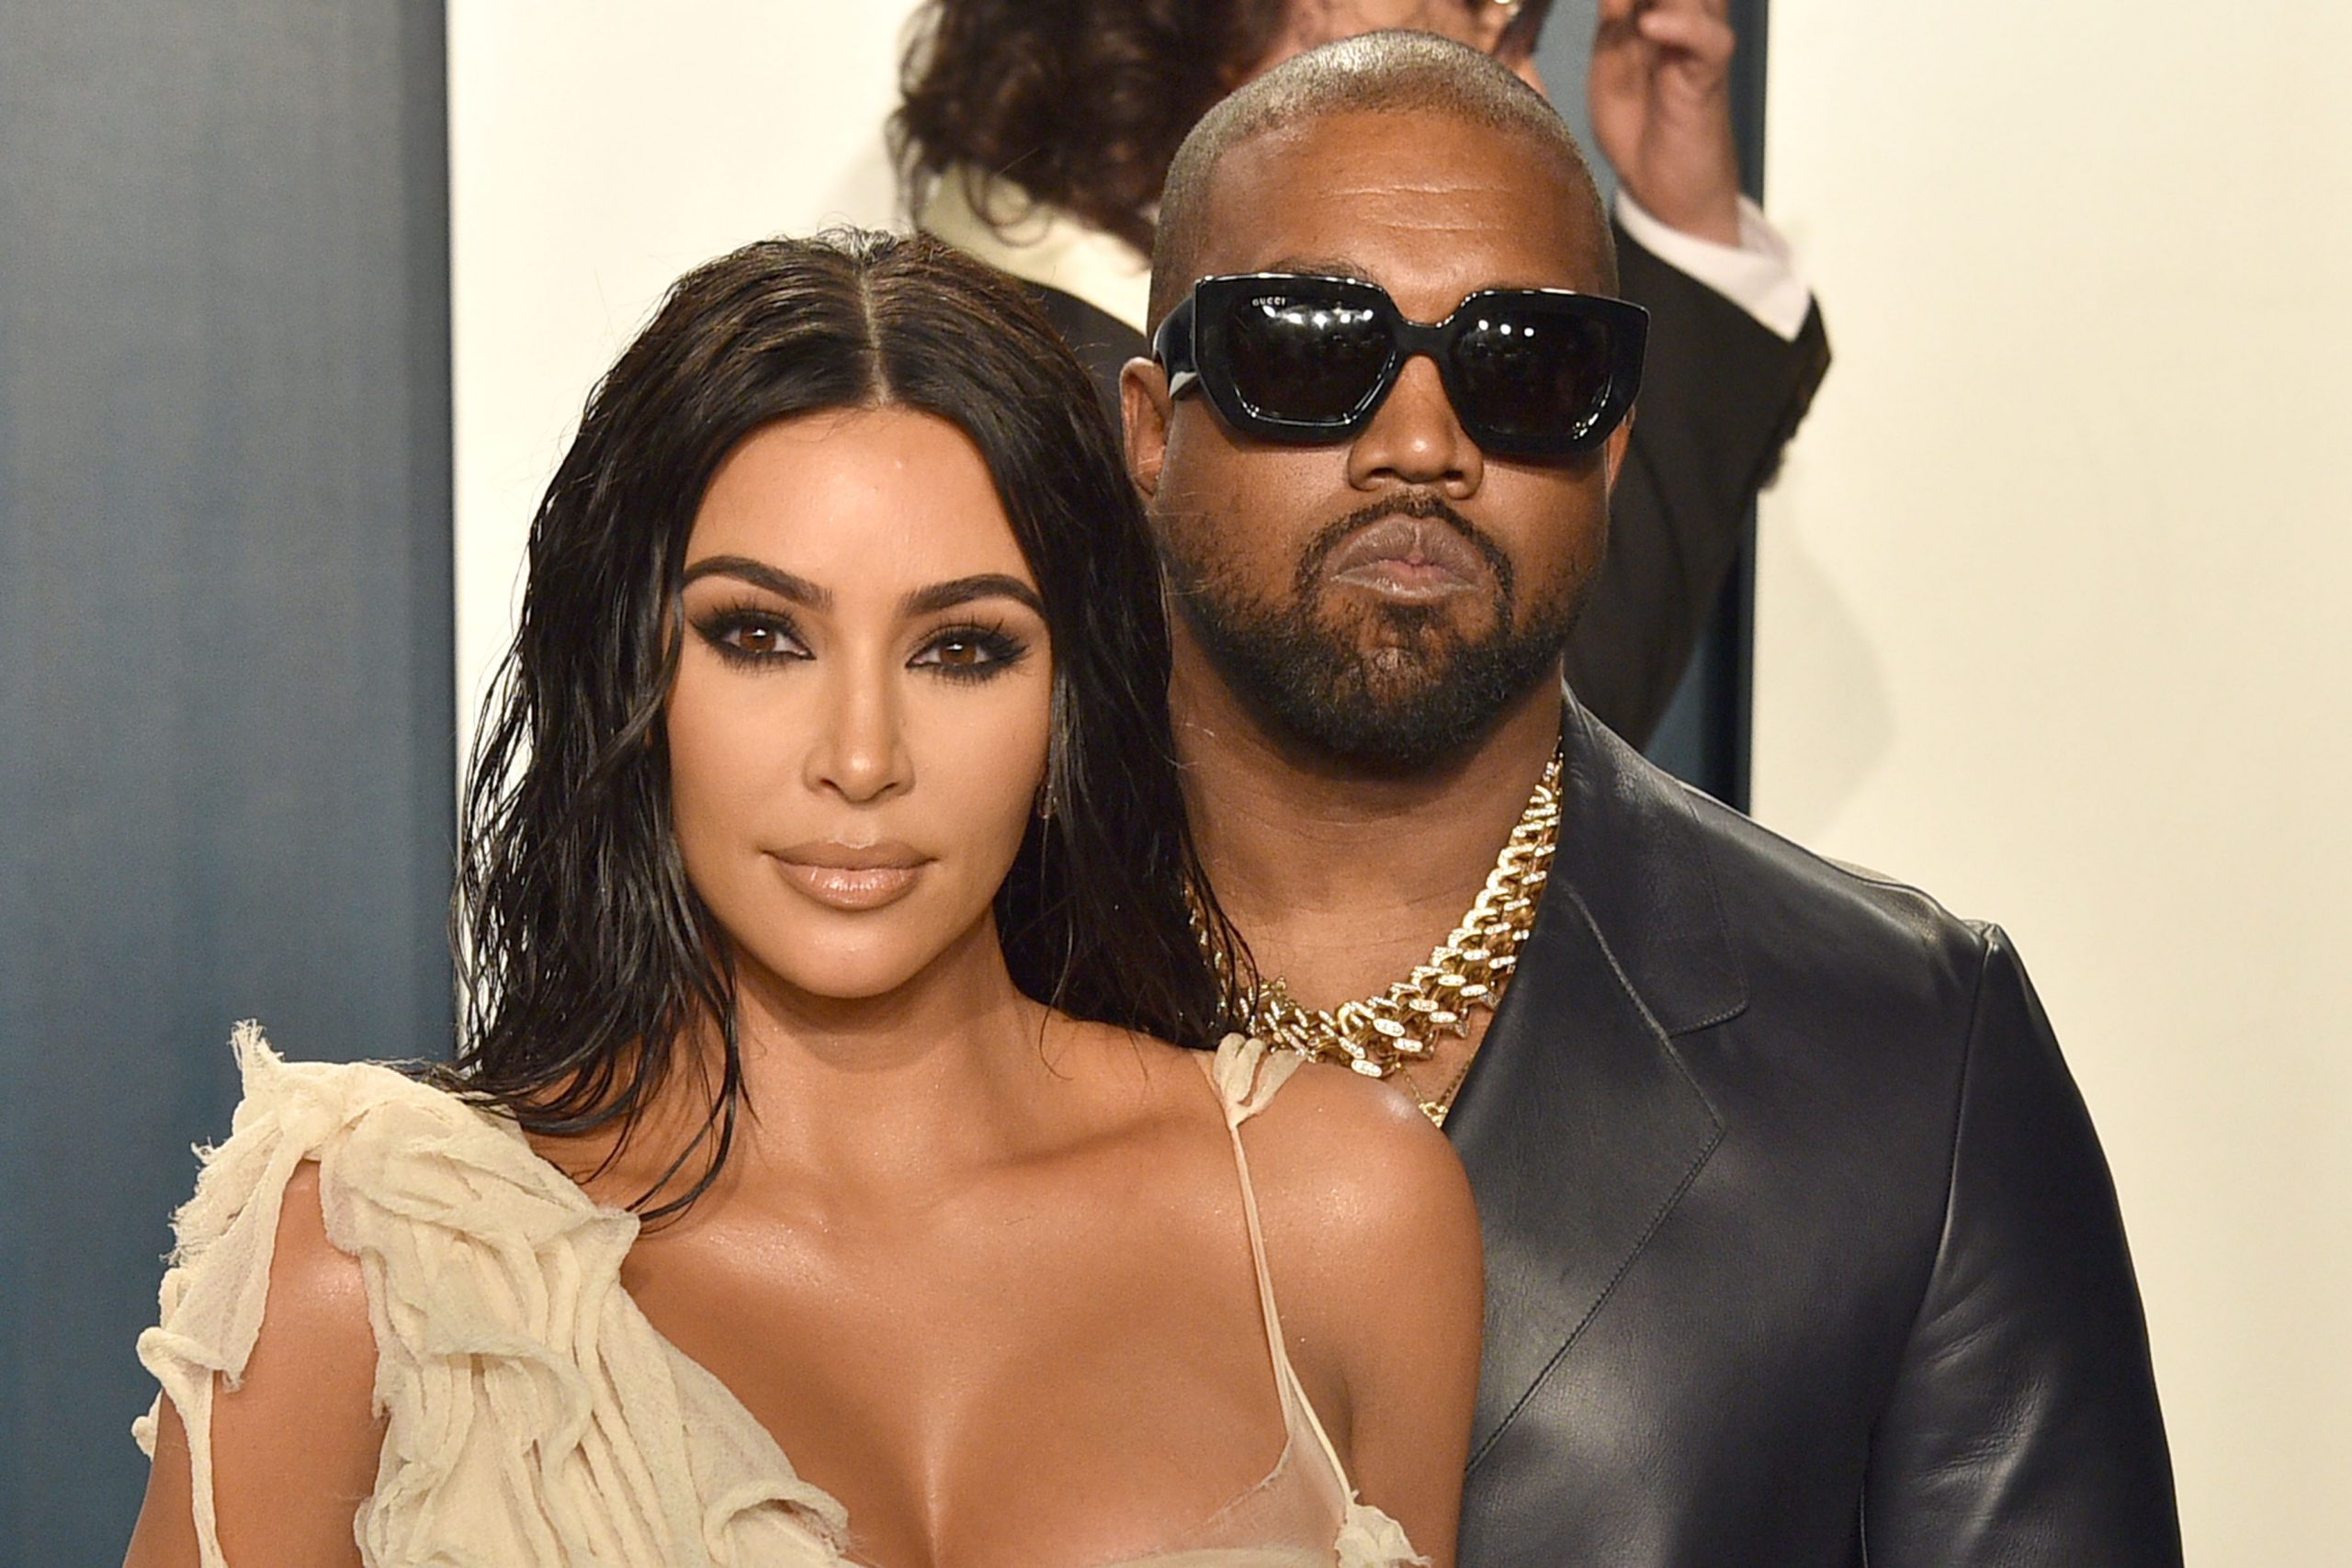 Has Kim Kardashian West Finally Decided to Leave Kanye West?